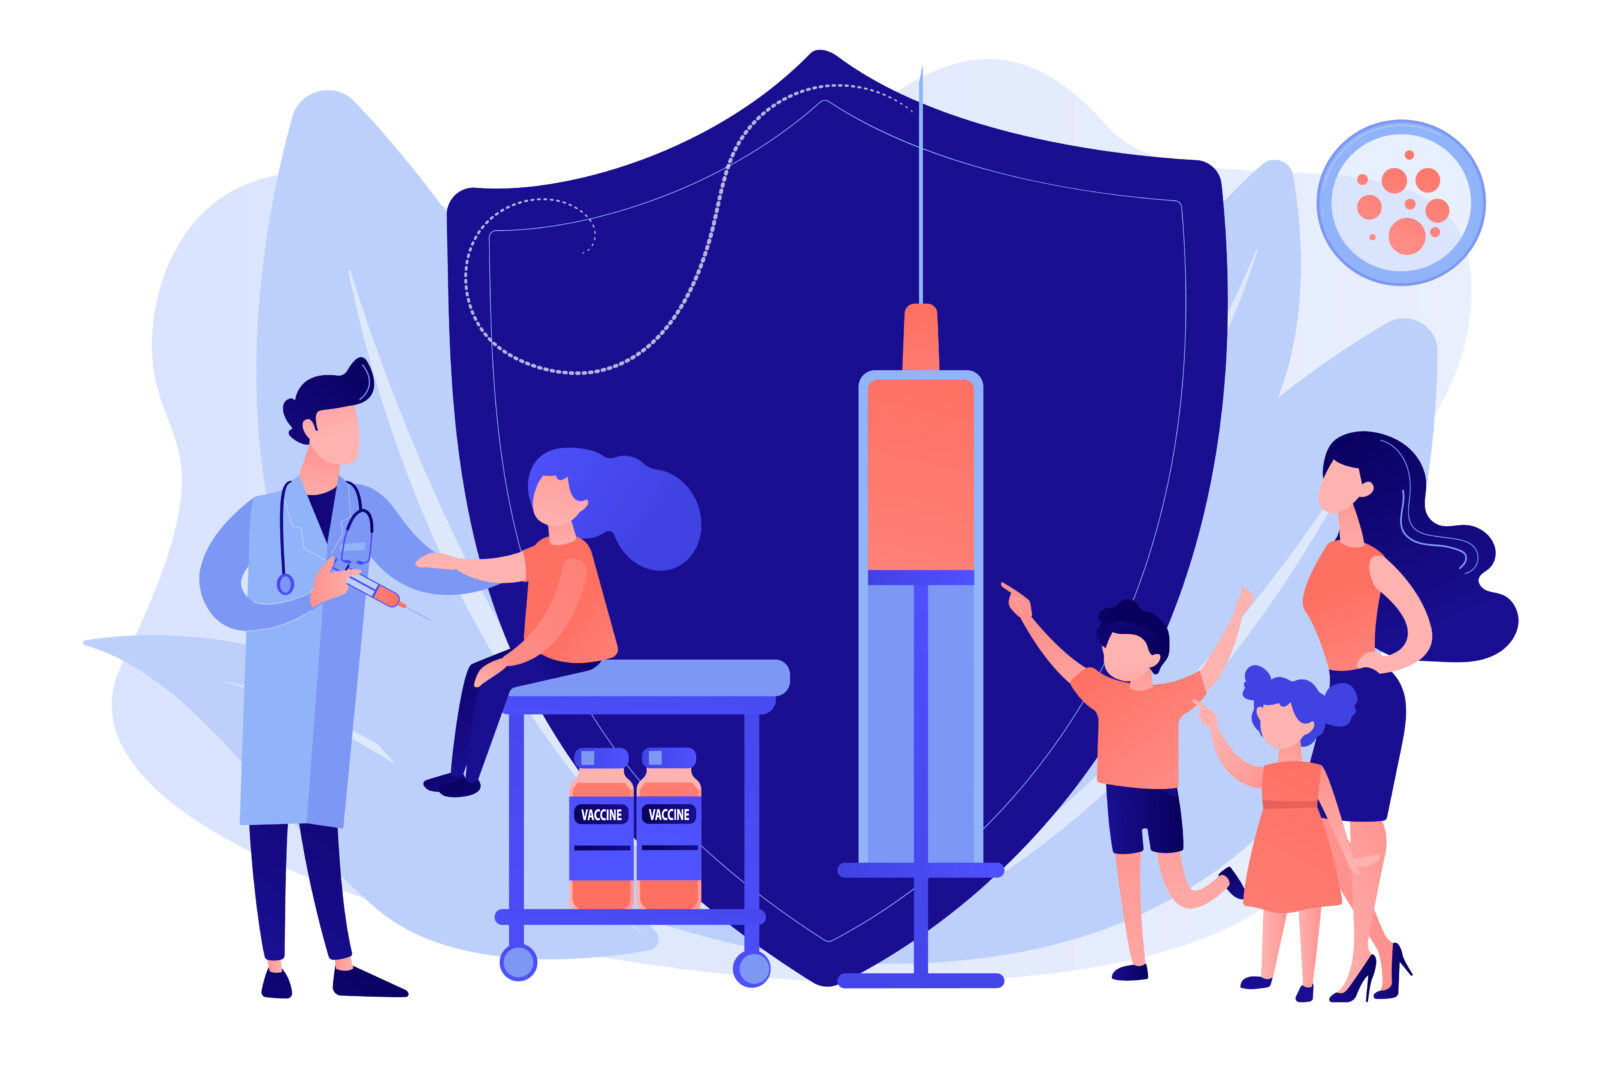 Vaccination of preteens and teens concept vector illustration